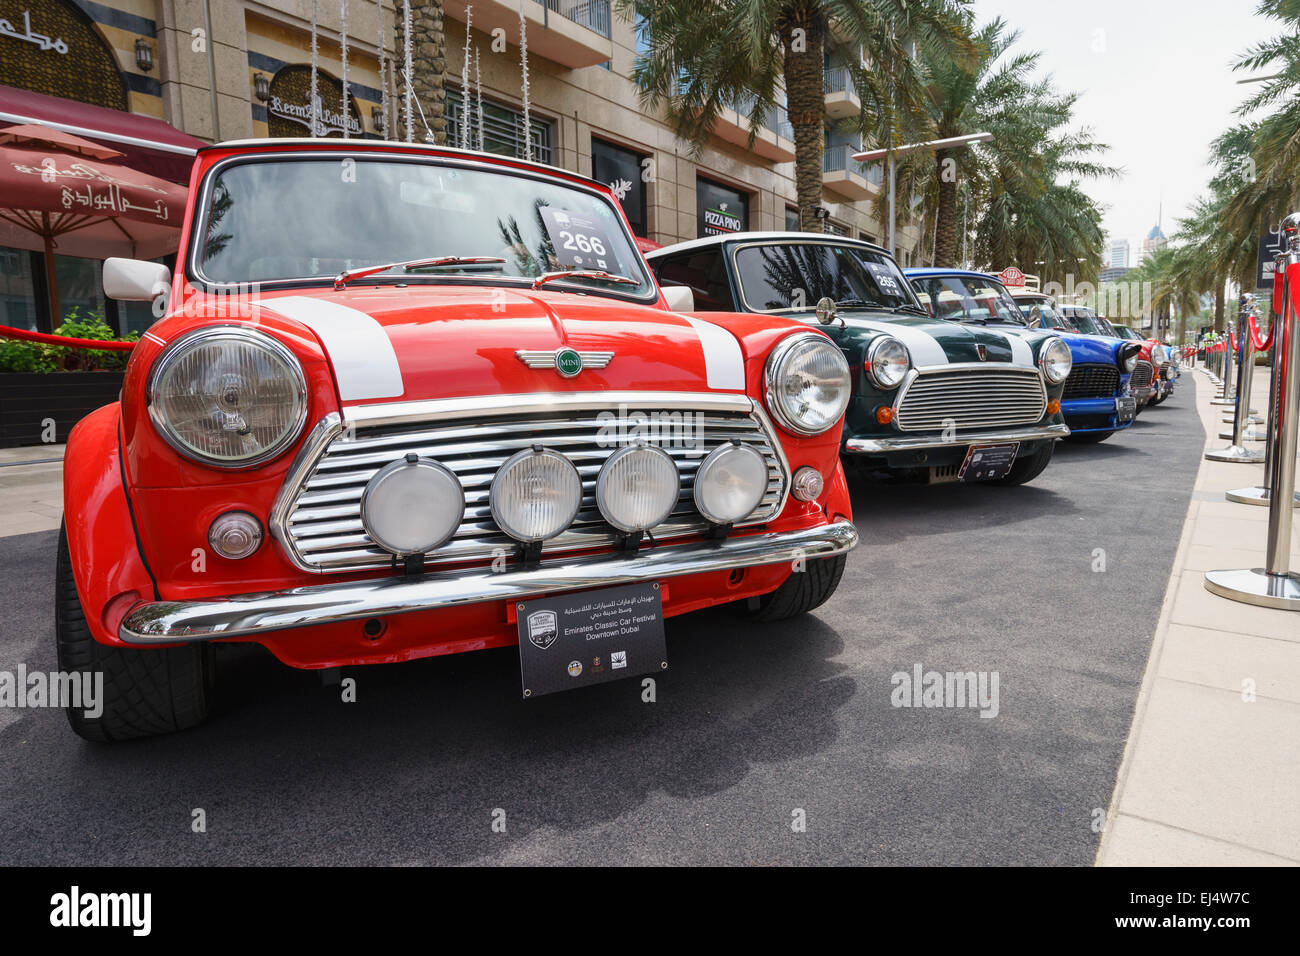 Vintage Mini Cars On Display At The Emirates Classic Car Festival